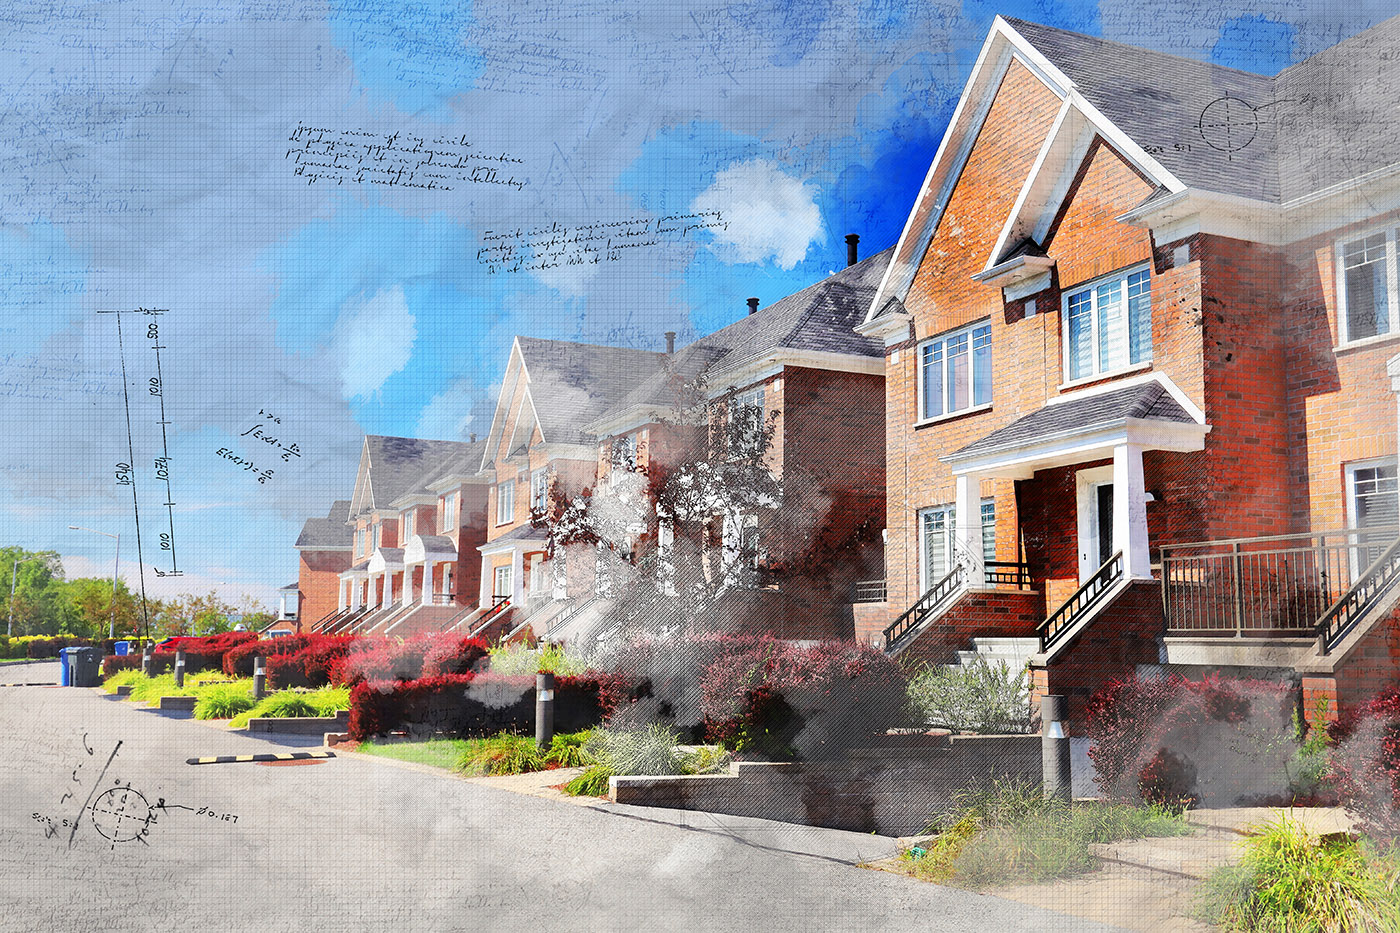 Colorful Urban Houses Sketch Image - Stock Photo